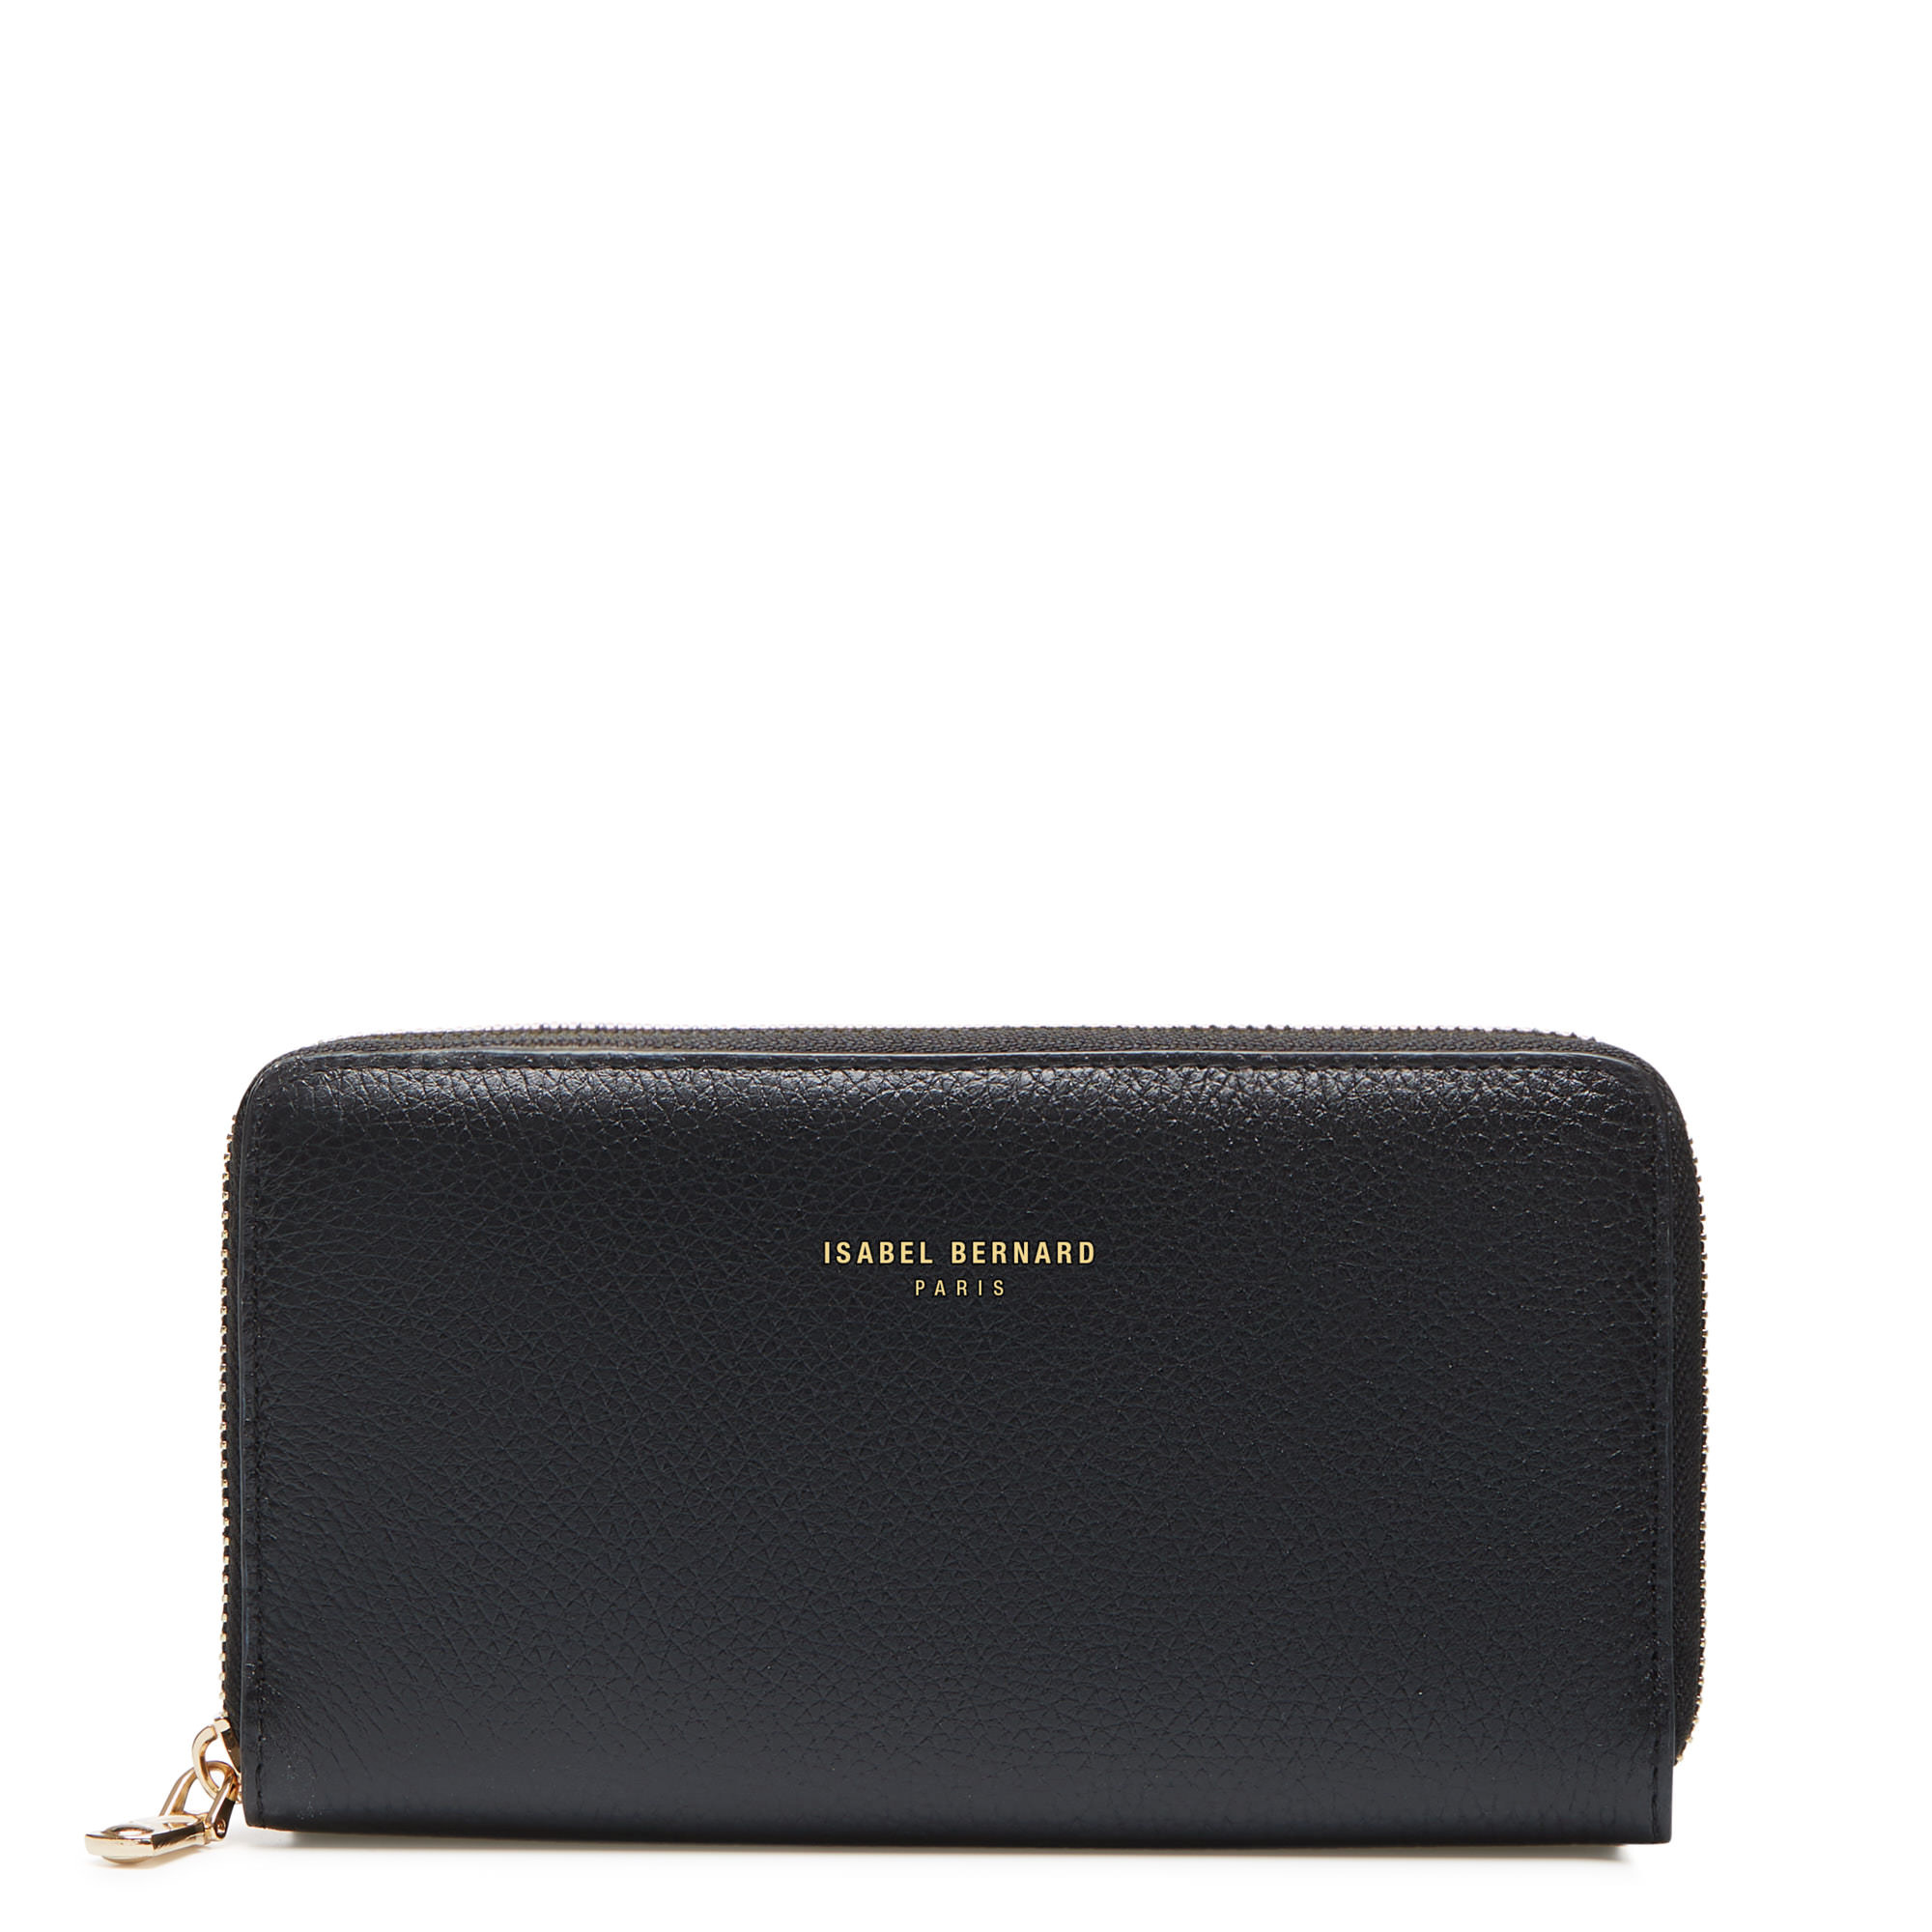 Isabel Bernard Honoré Léa black calfskin leather zipper wallet